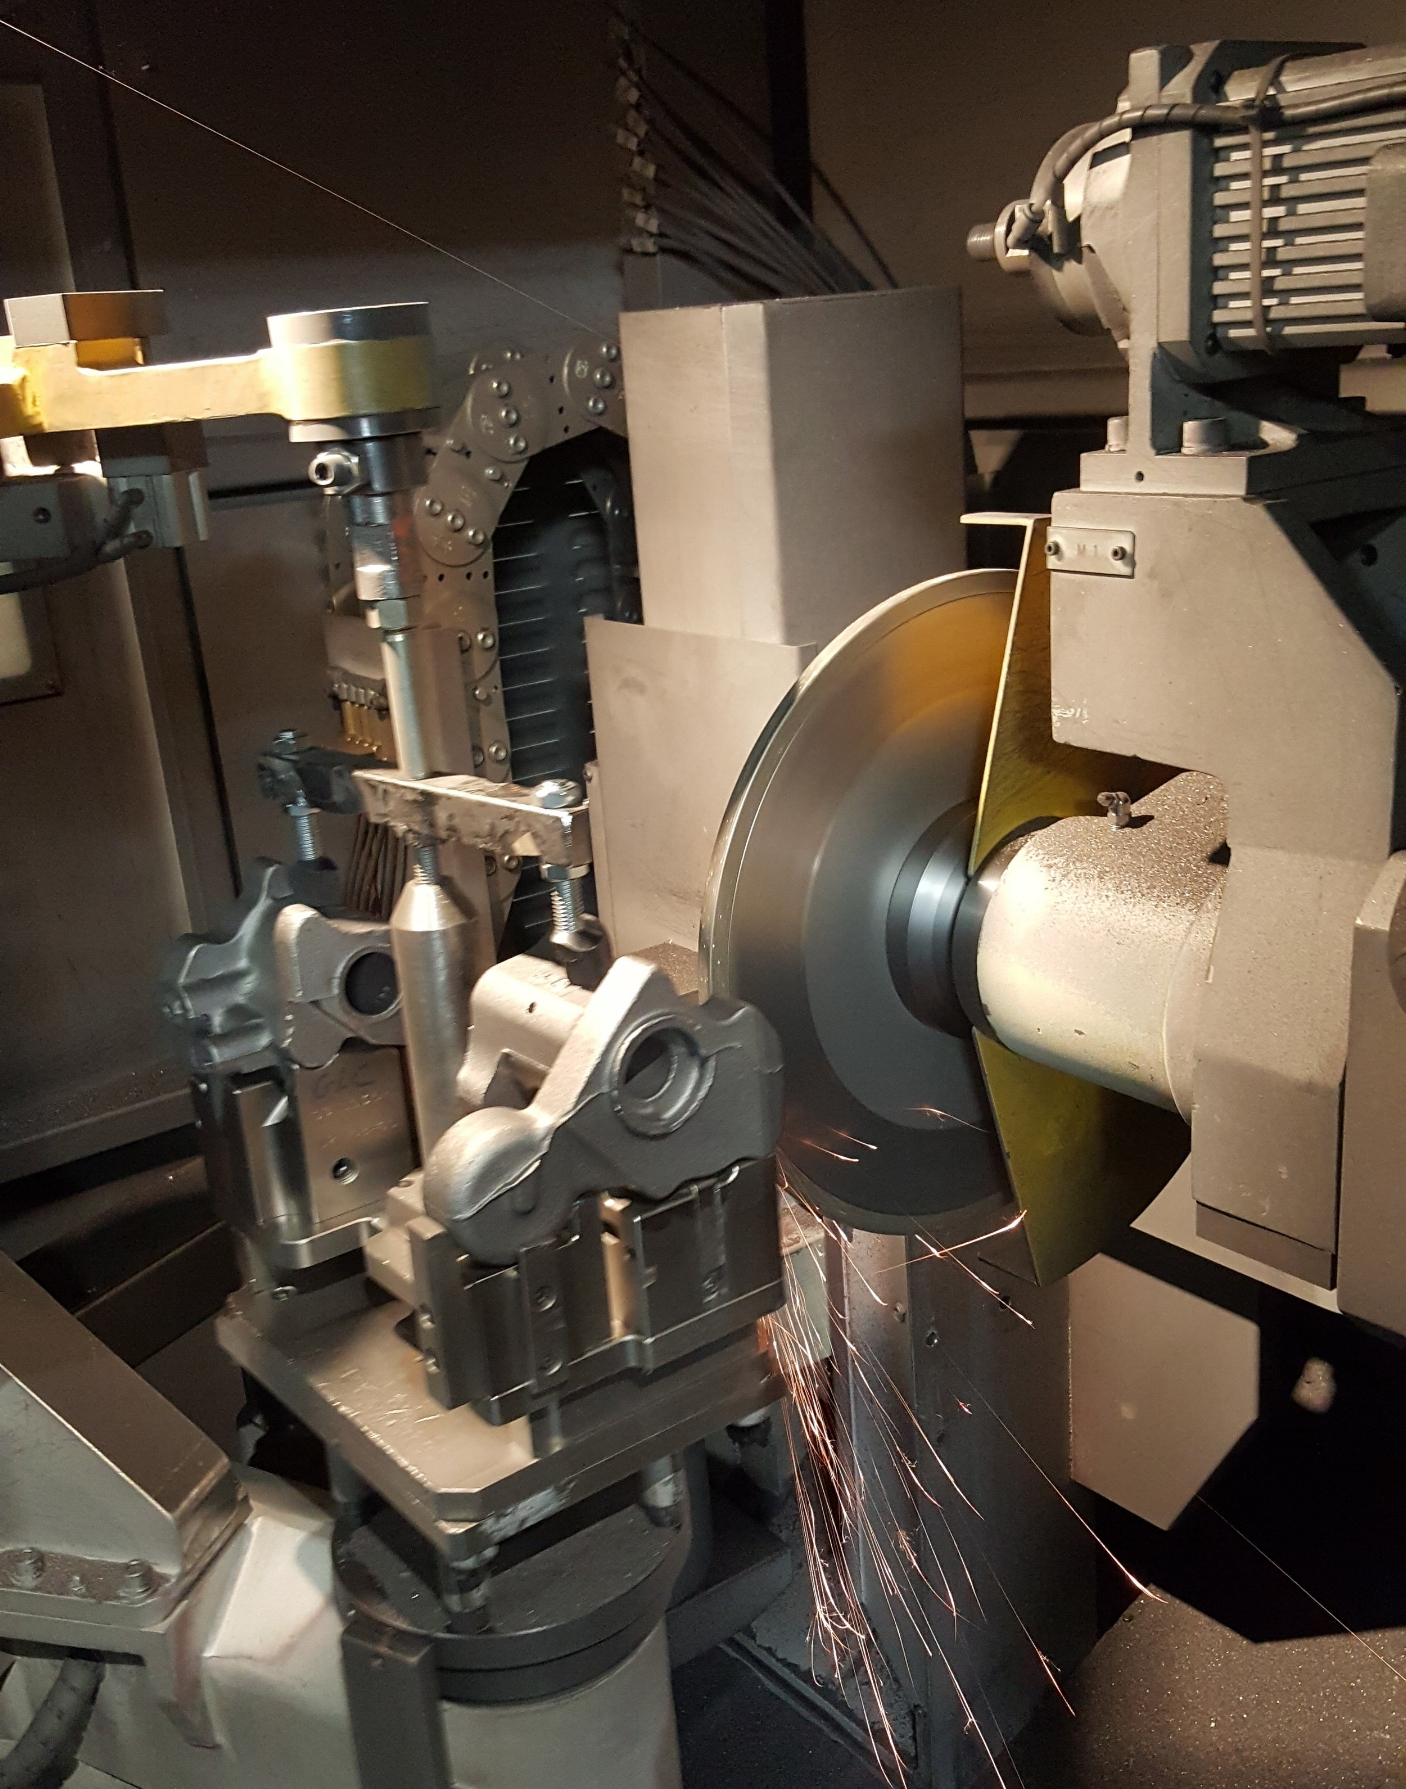 Our GLC Holland finishing facility utilizes Barrinder and Maus Automated Grinders, as well as AFS Trim Presses. These automated systems increase grinding productivity while providing greater consistency in flash and gate removal. -